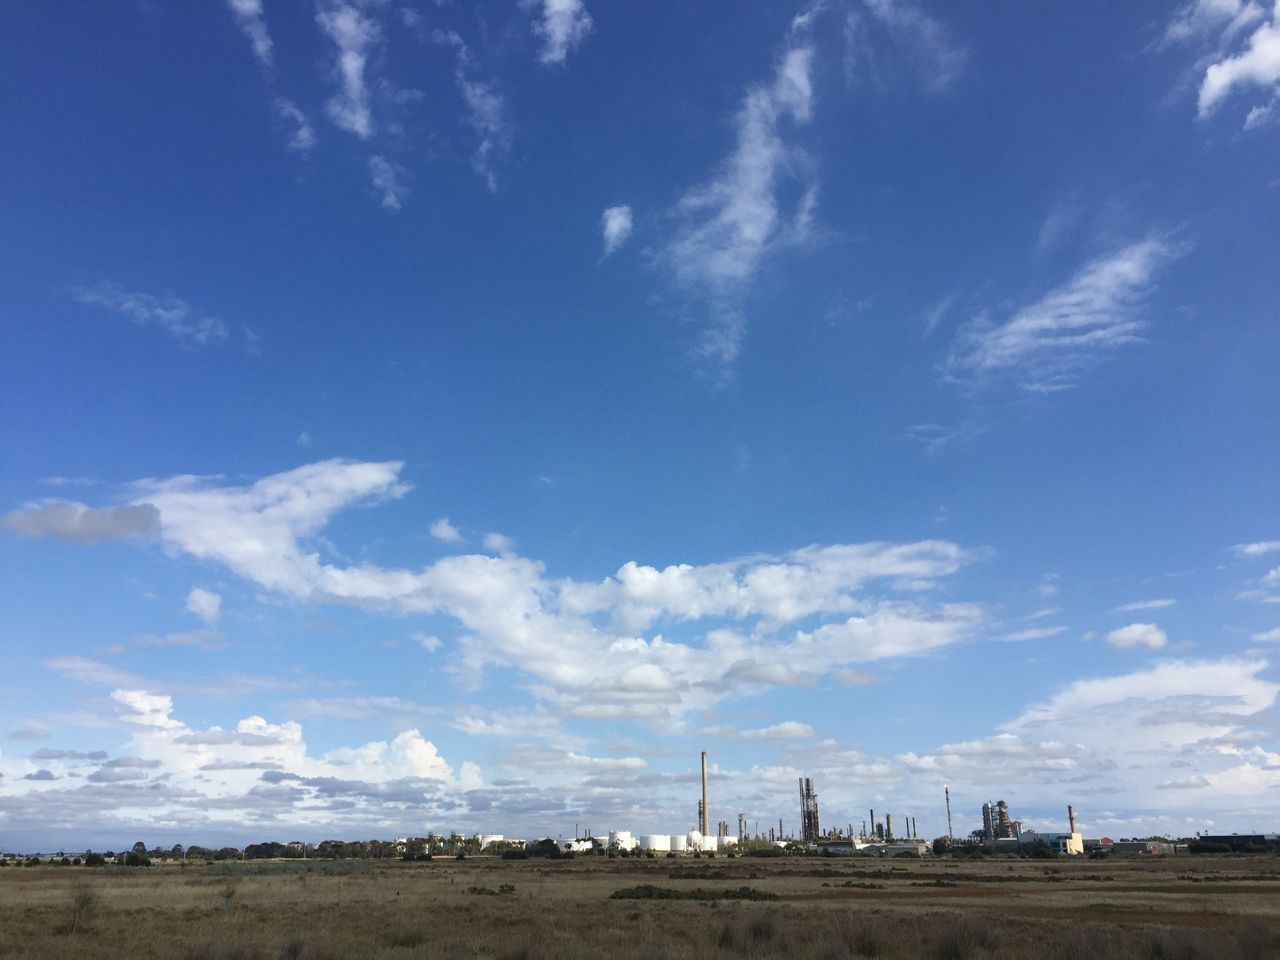 Al Altona Blackandwhite Blue Sky Cloud Cloud - Sky Cloudy Environmental Conservation Exploring Industrial No People Outdoors Silhouette Sky Weather